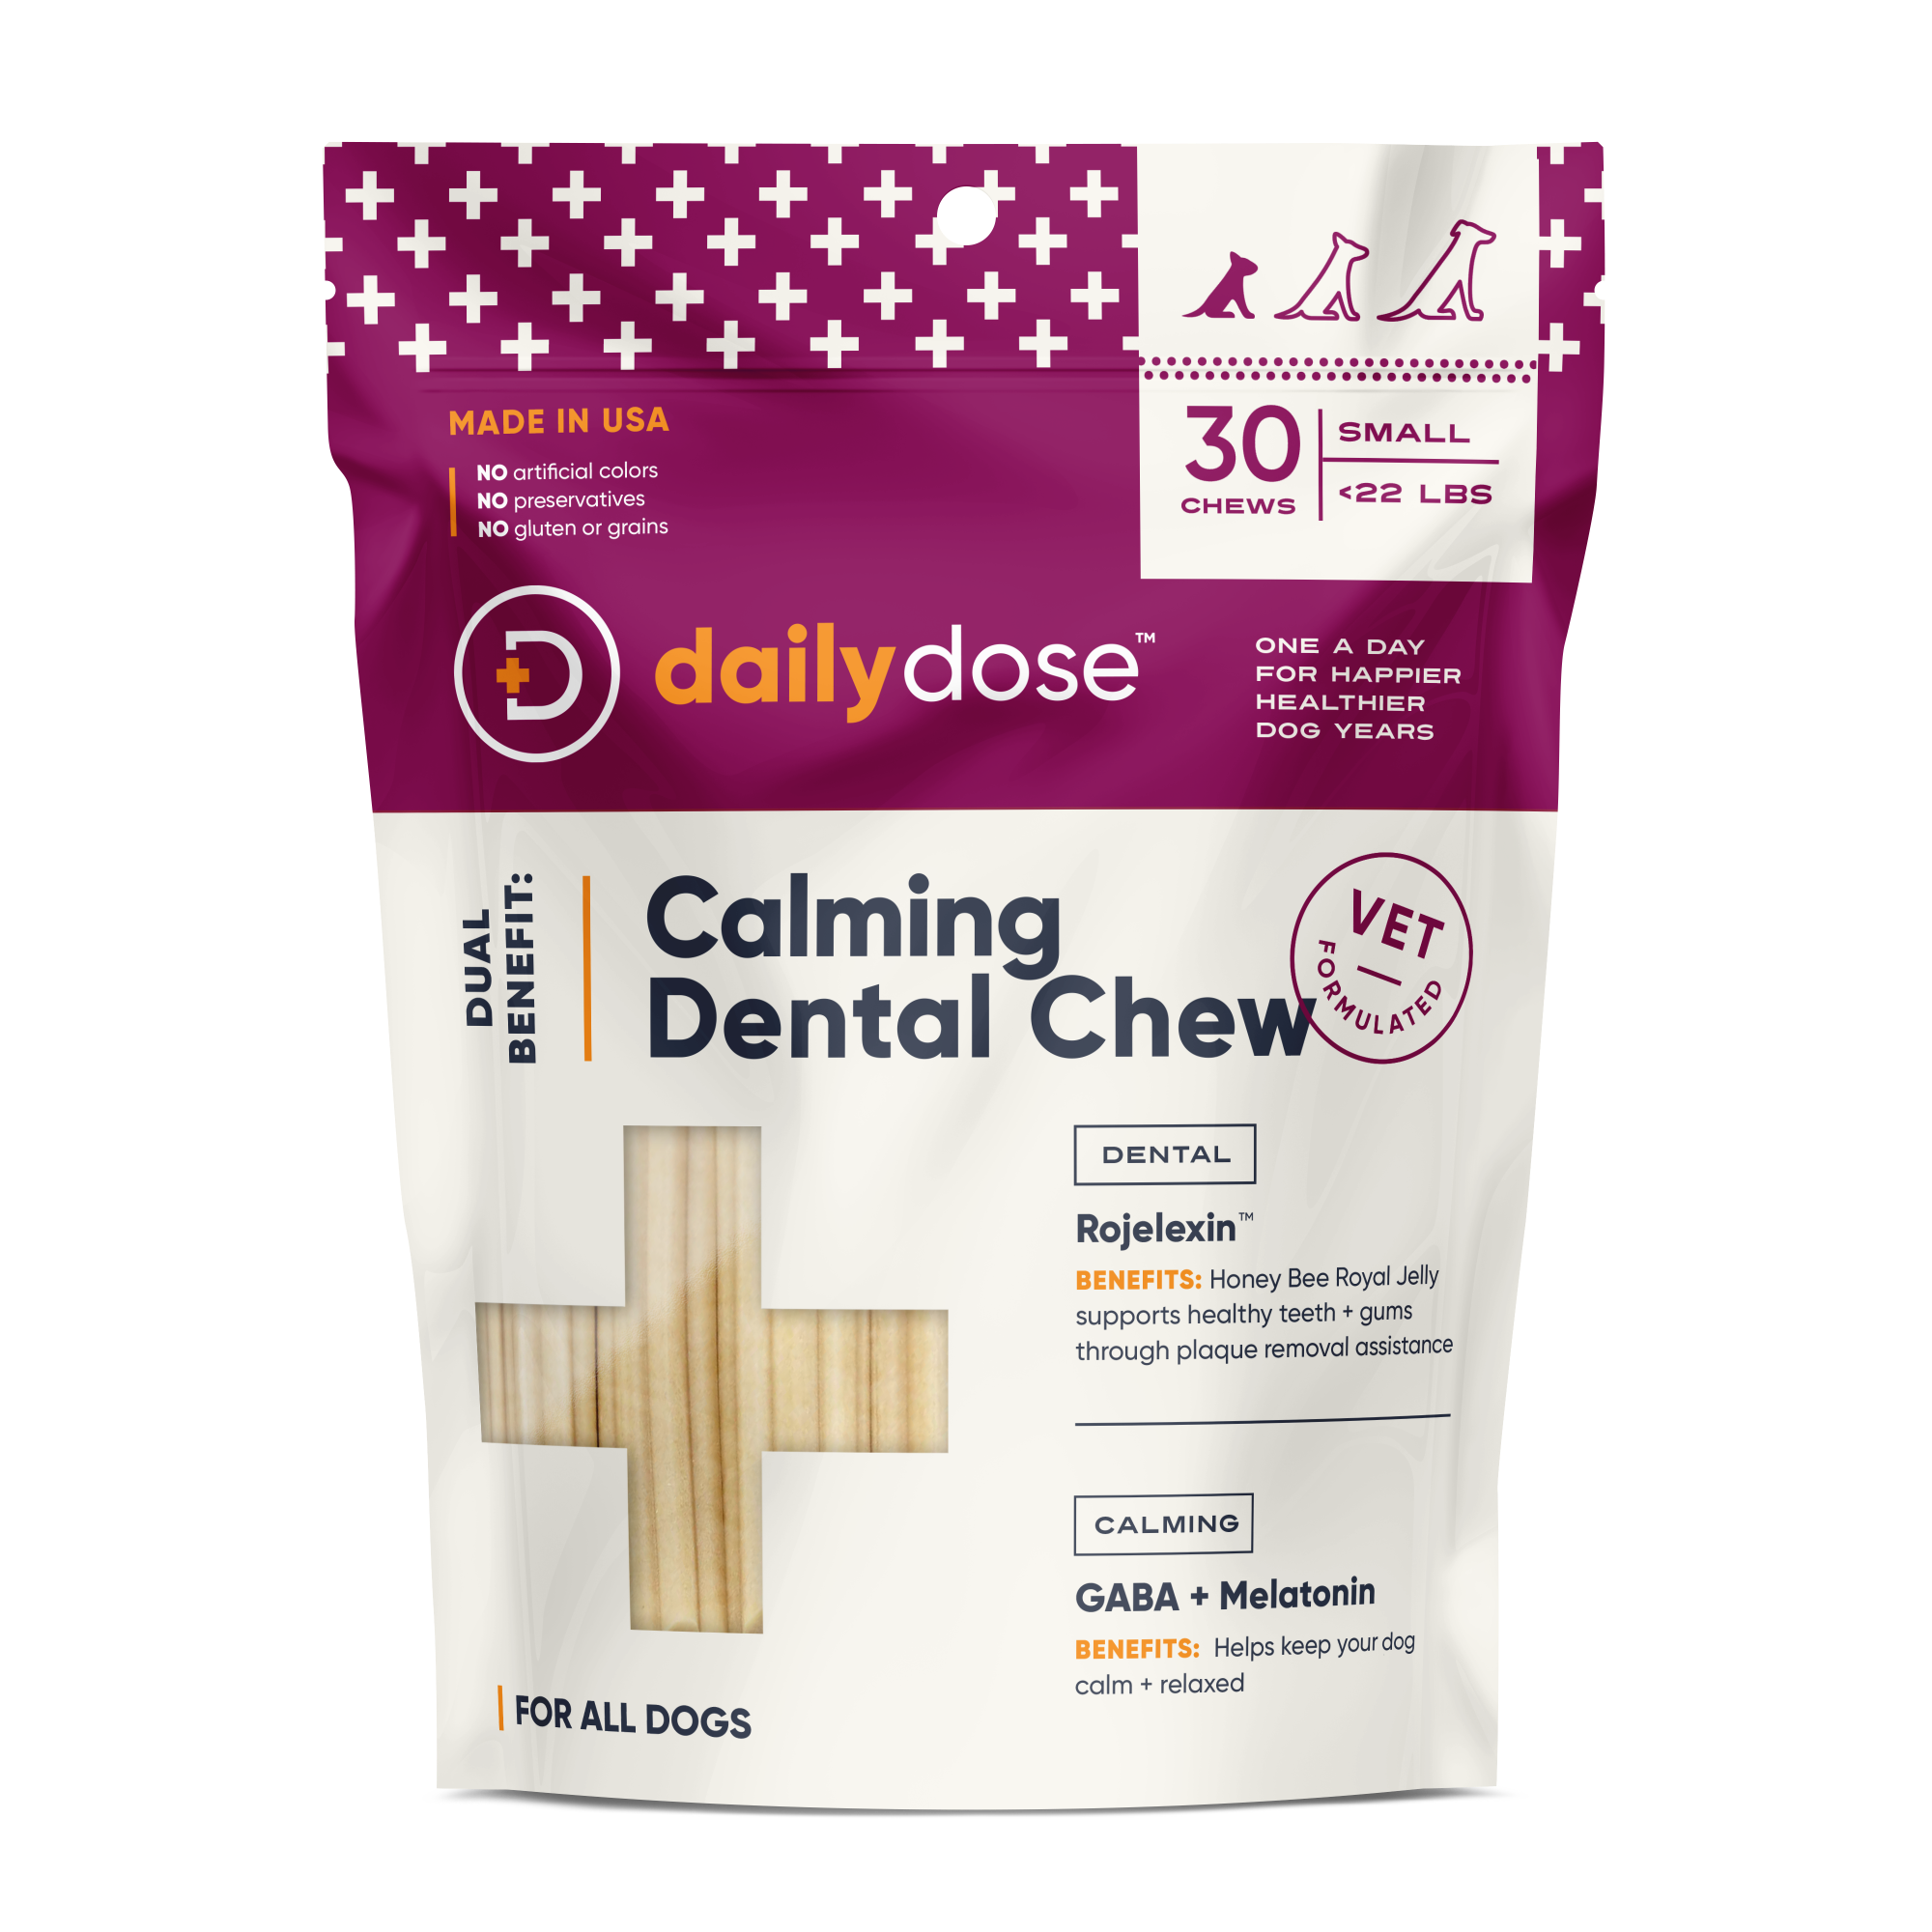 Calming + Dental Chew